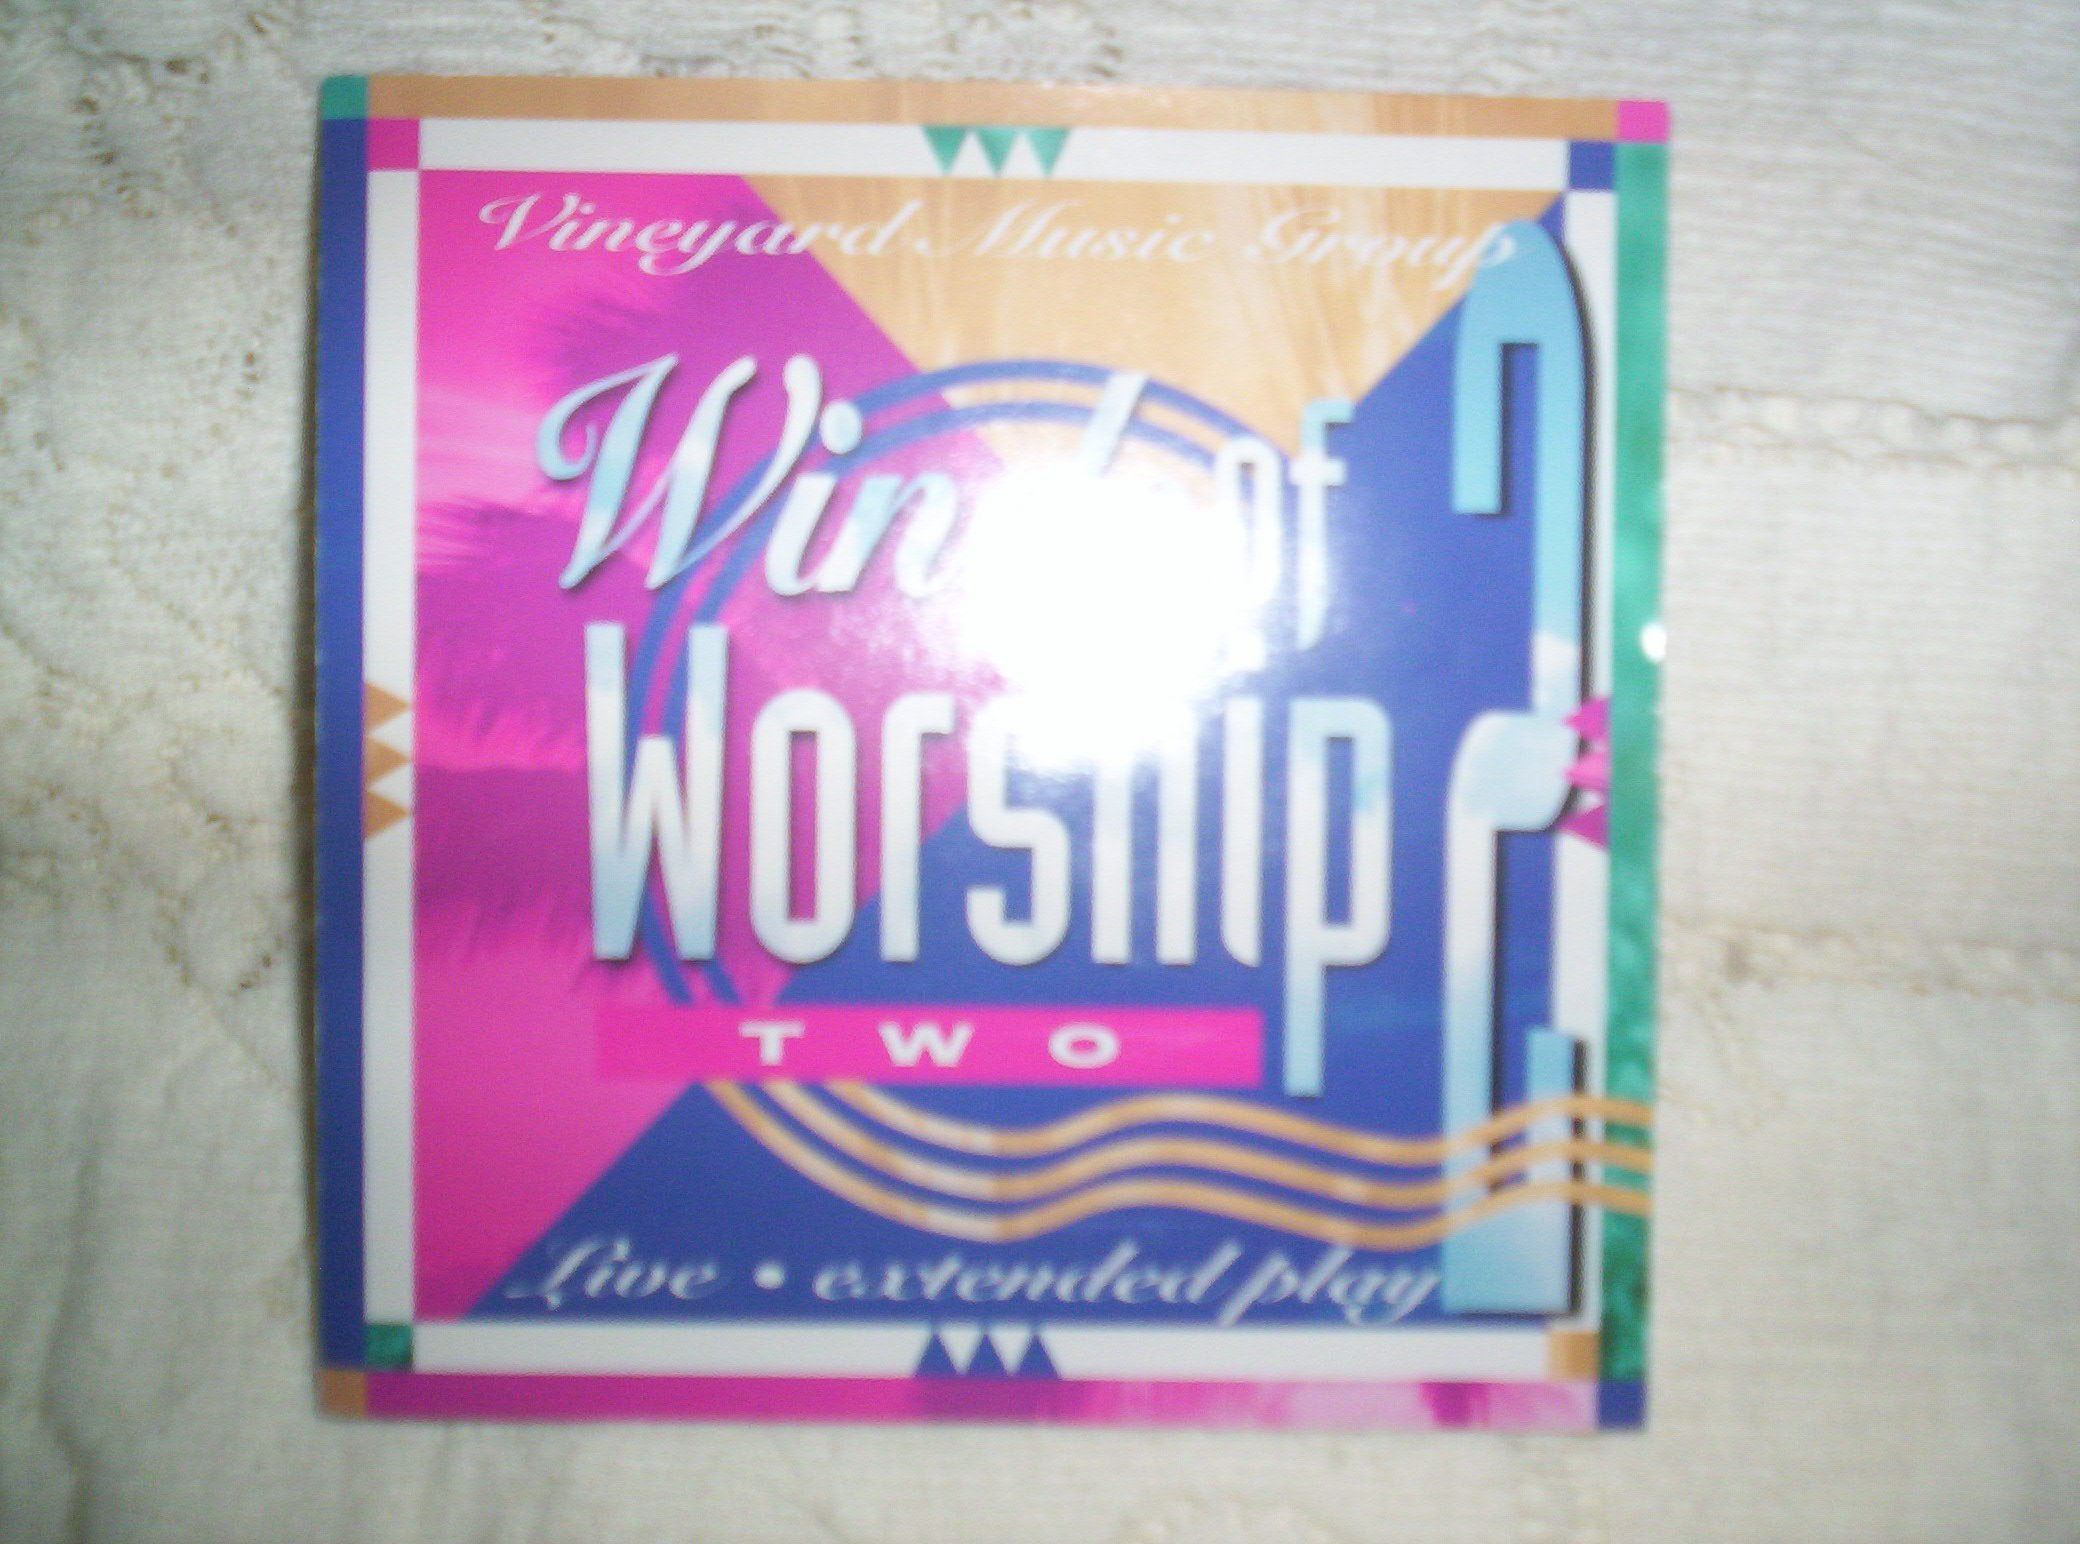 Winds of Worship 2: Live- Extended Play